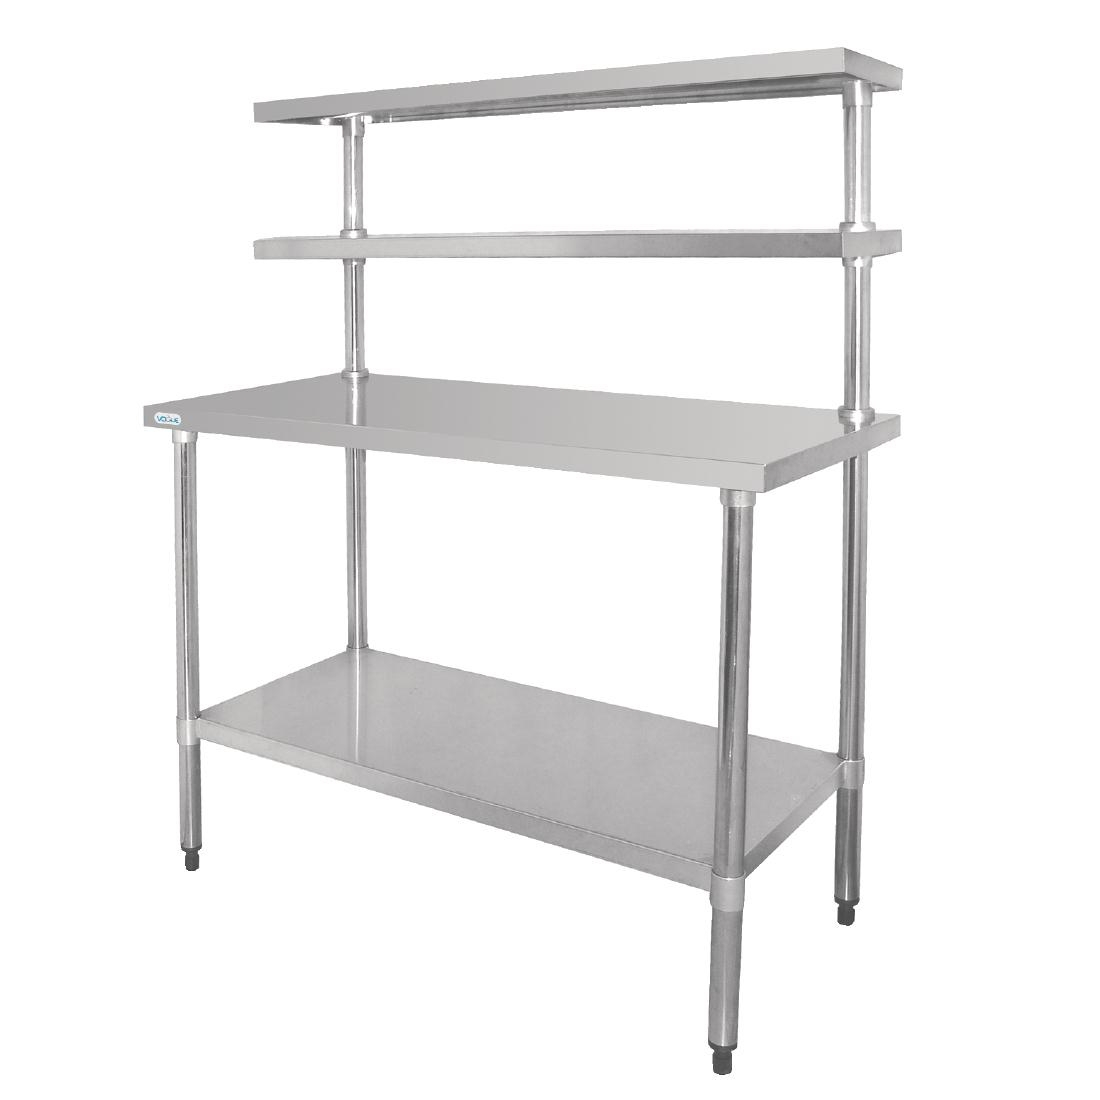 Vogue Stainless Steel Prep Station 1800x600mm